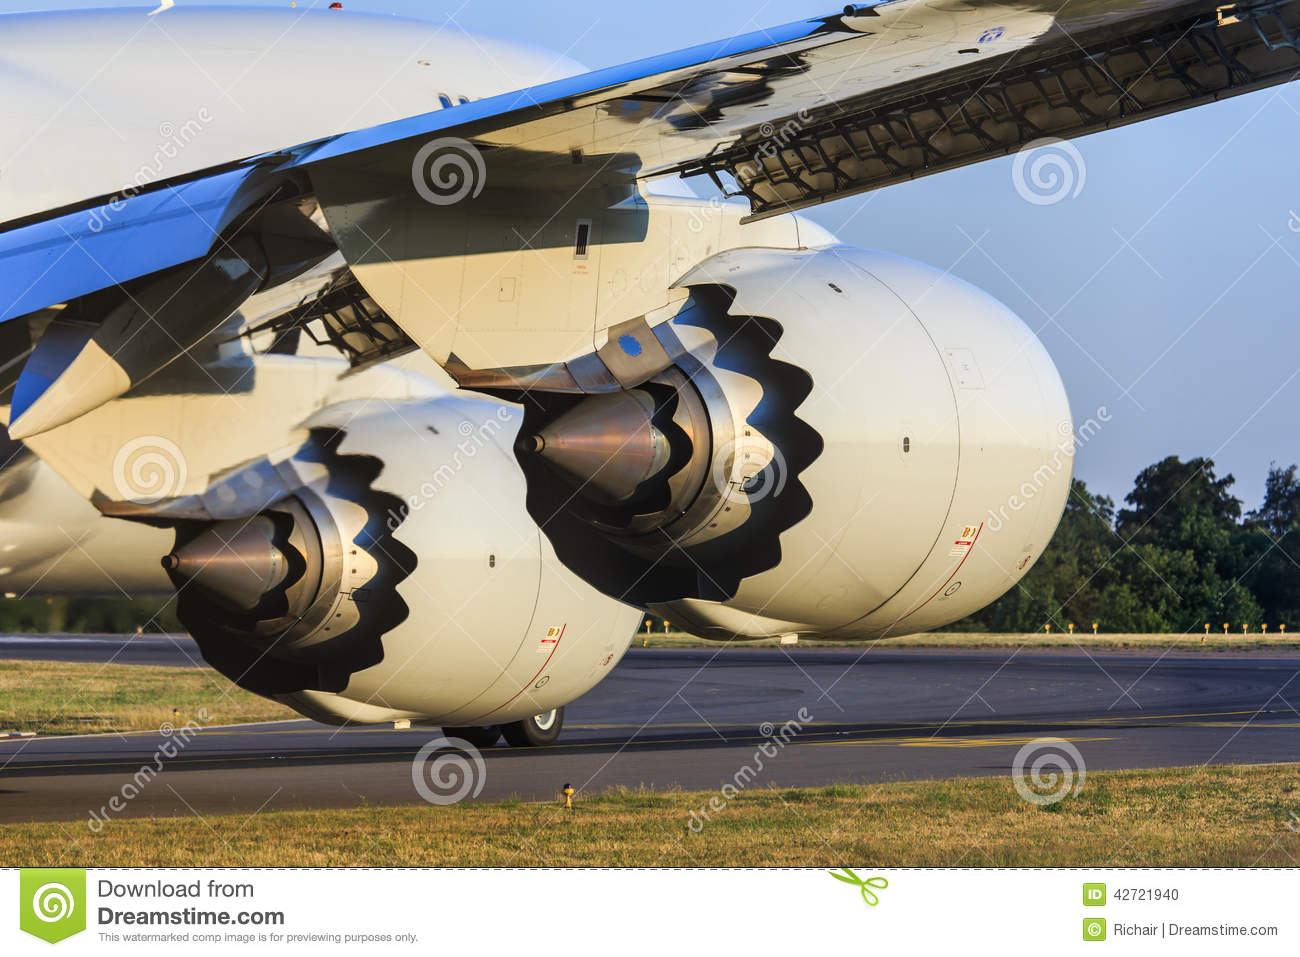 Free Flow Exhaust >> Jet Engines In Detail Stock Photo - Image: 42721940